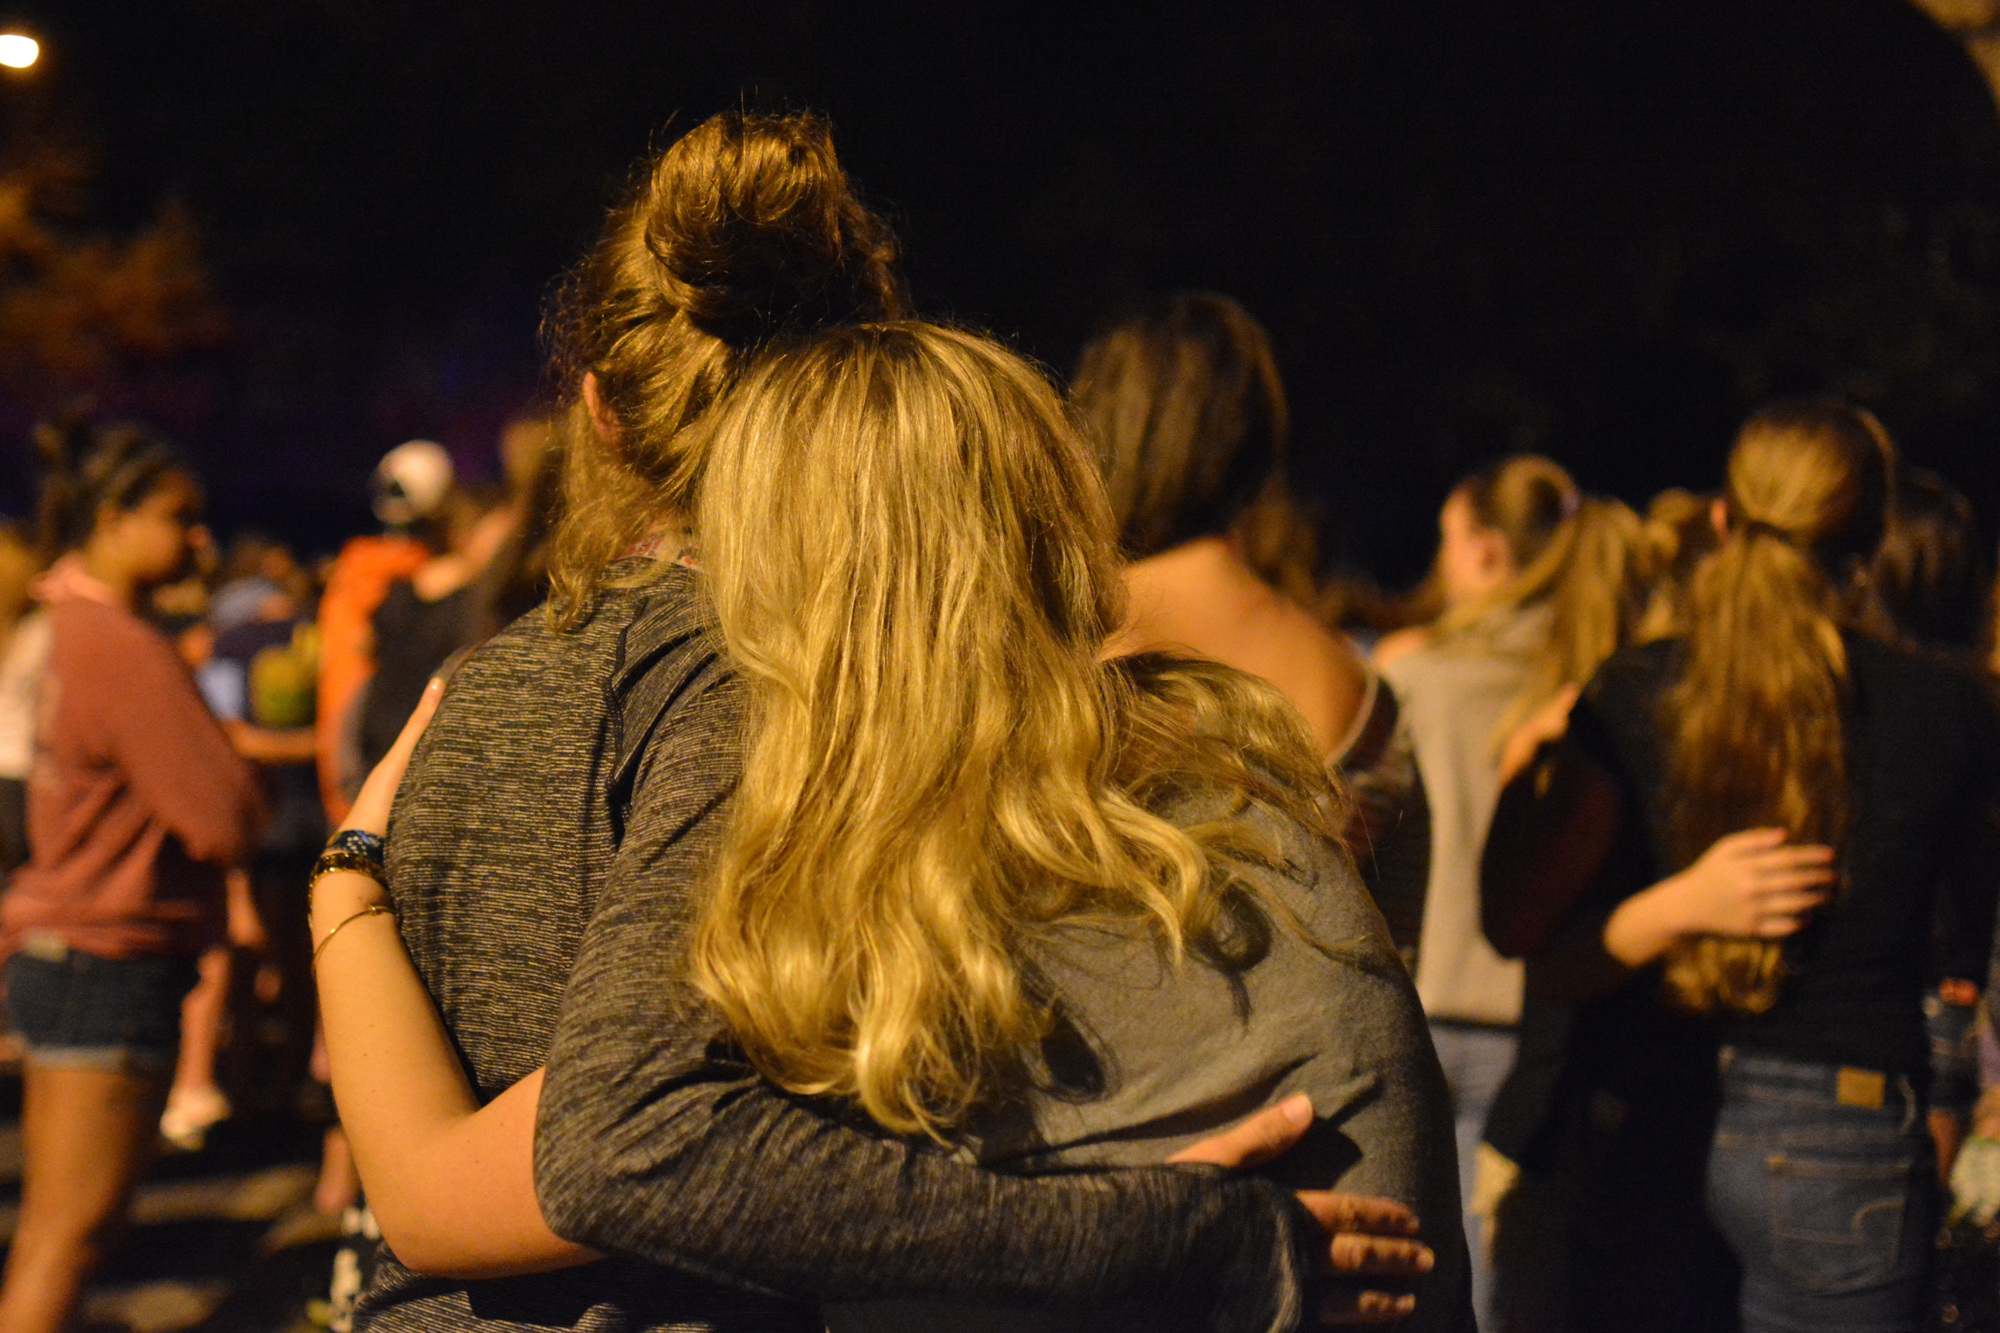 Lucy Milbourn and Ali Alger share an embrace as they stand at the candlelight vigil.